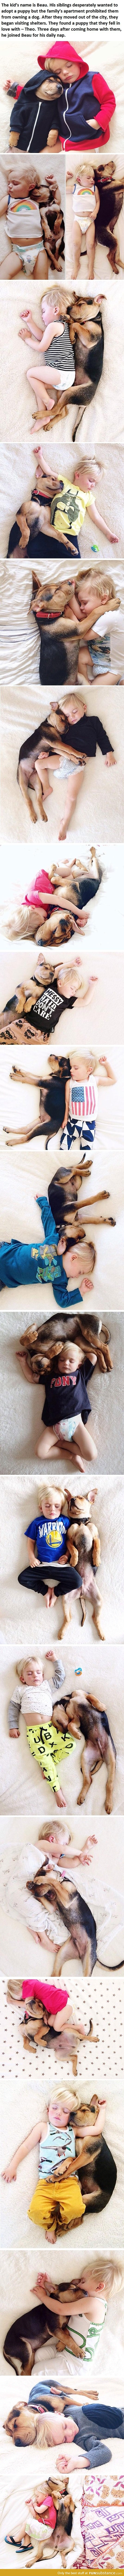 young boy and puppy sleep together and cuddle